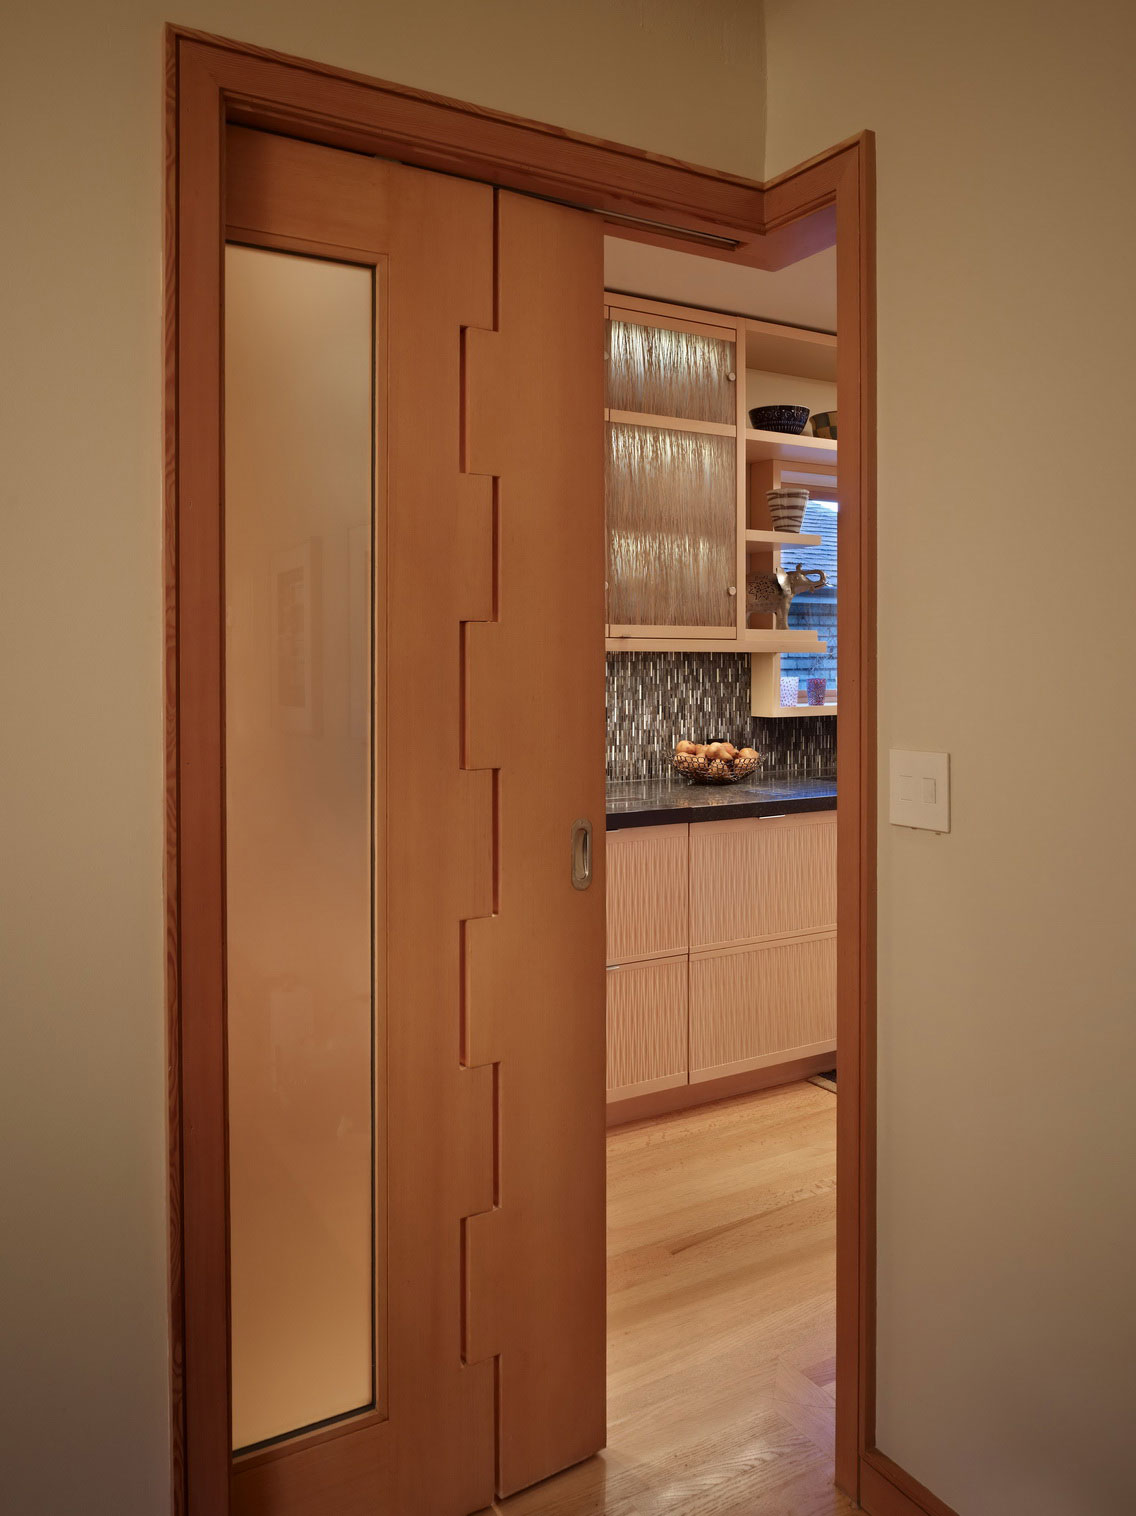 Kitchen cabinets pocket doors - Kitchen Cabinets Pocket Doors 14